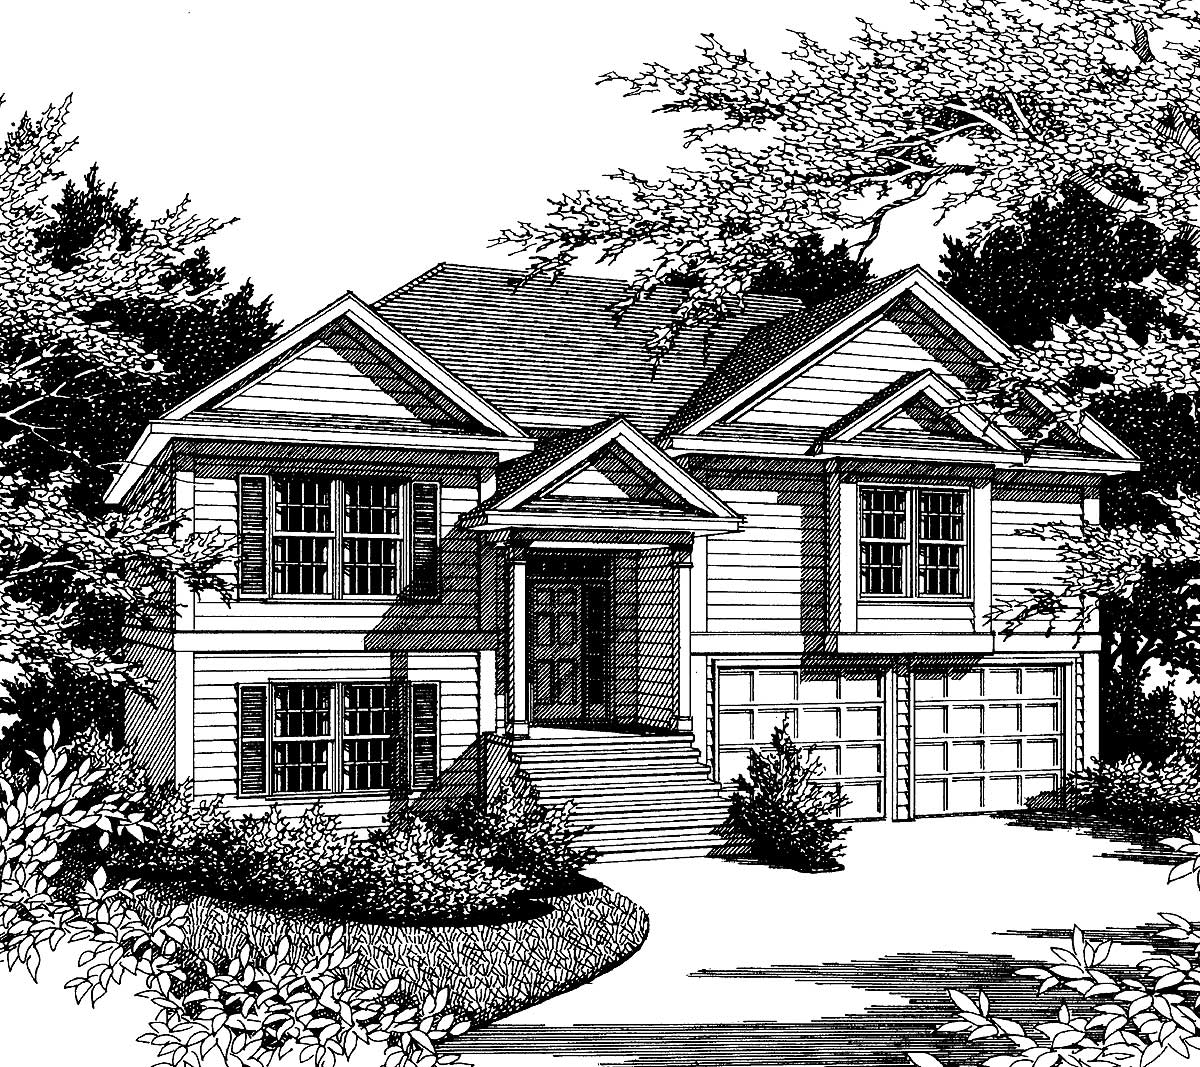 9284vs architectural designs house plans for Architecturaldesigns com house plan 56364sm asp